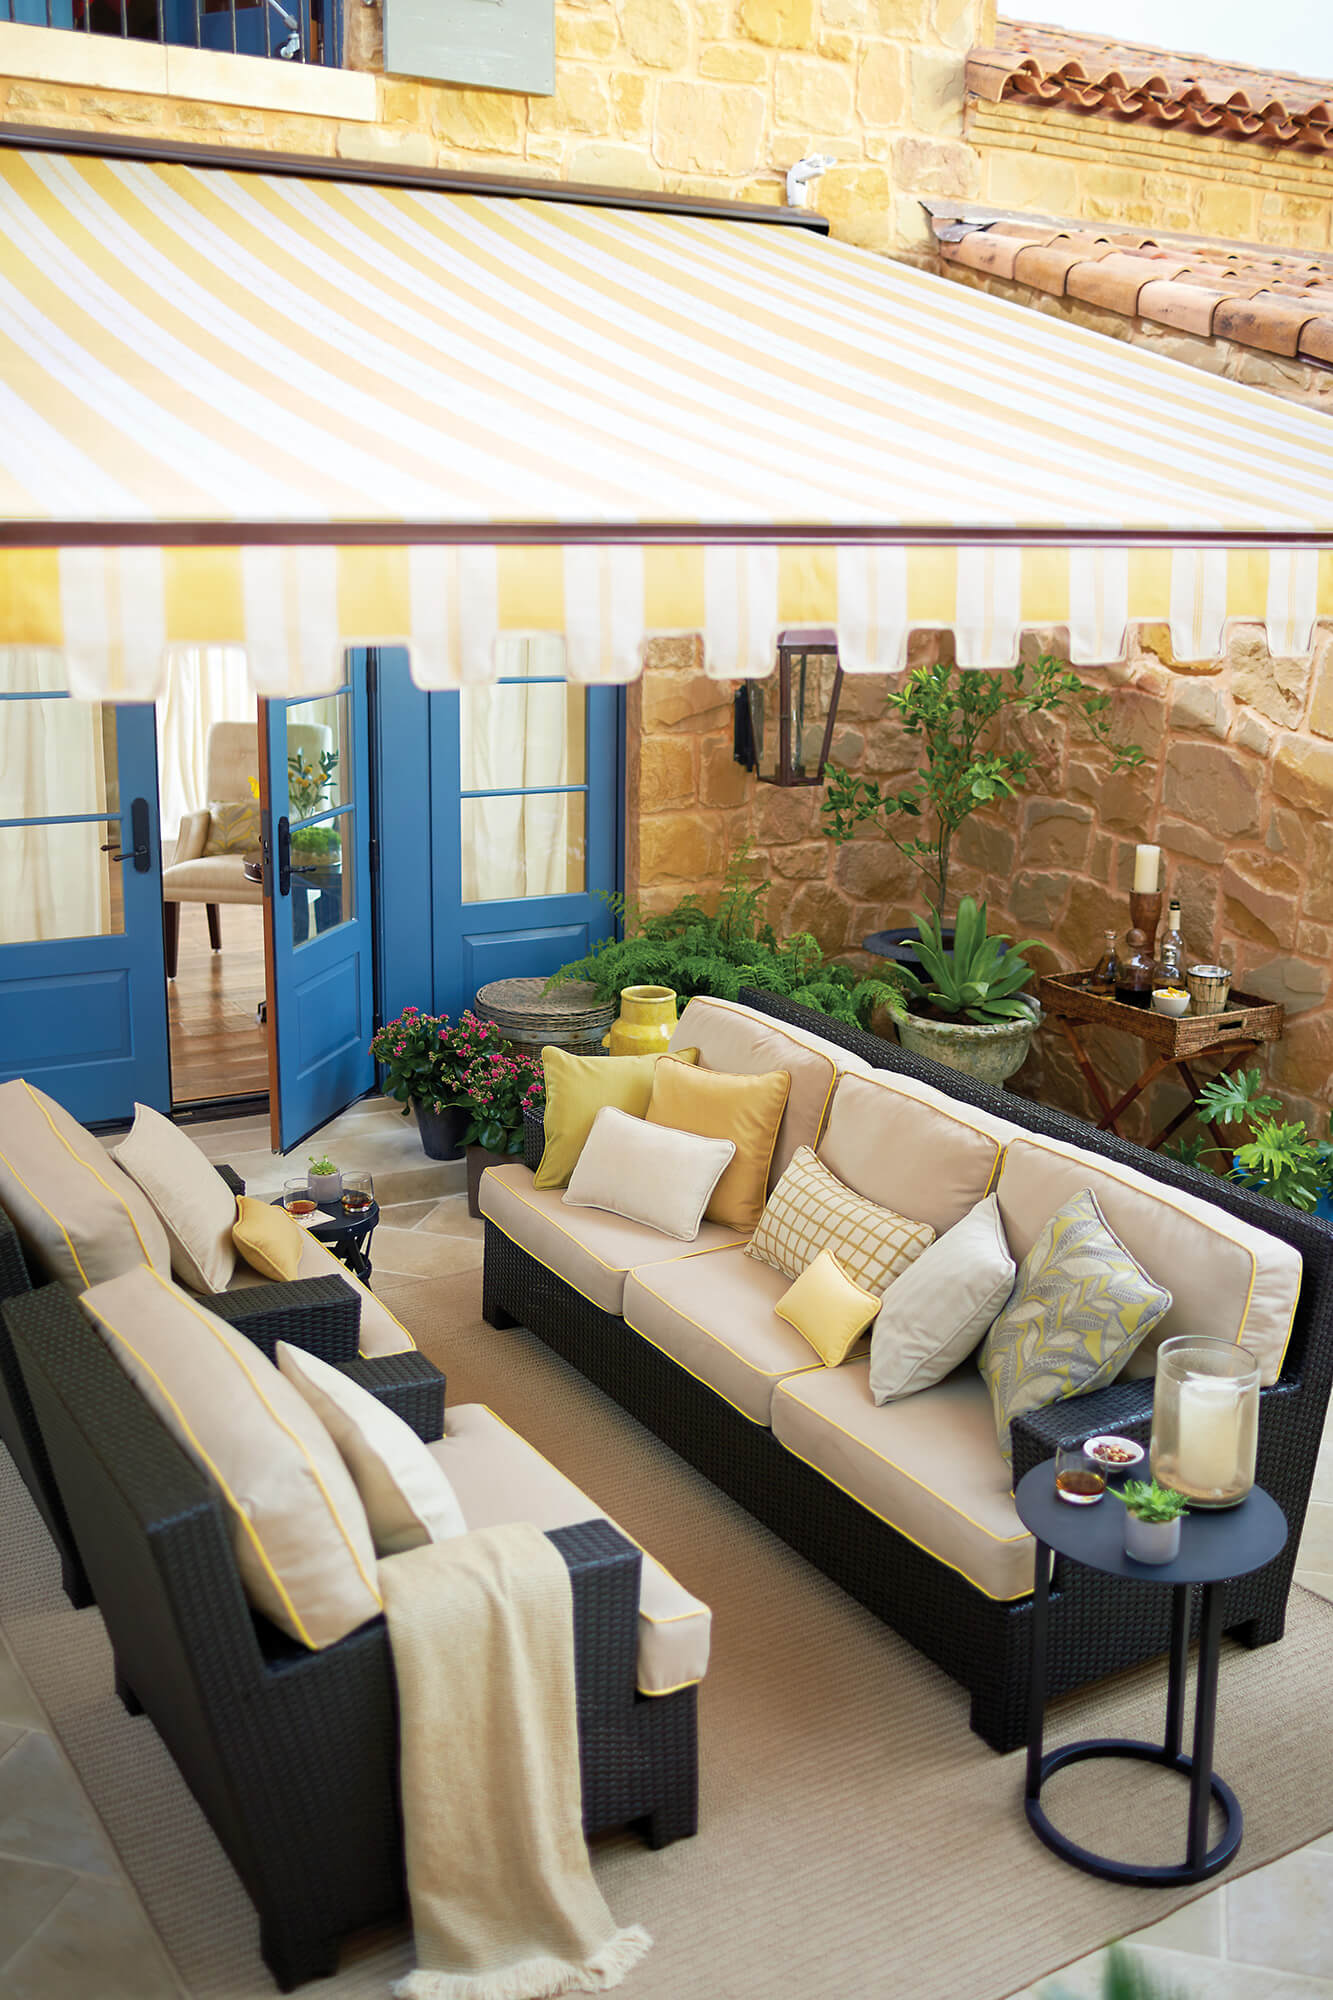 Patio furniture shaded by retractable awning made using yellow and white striped fabric